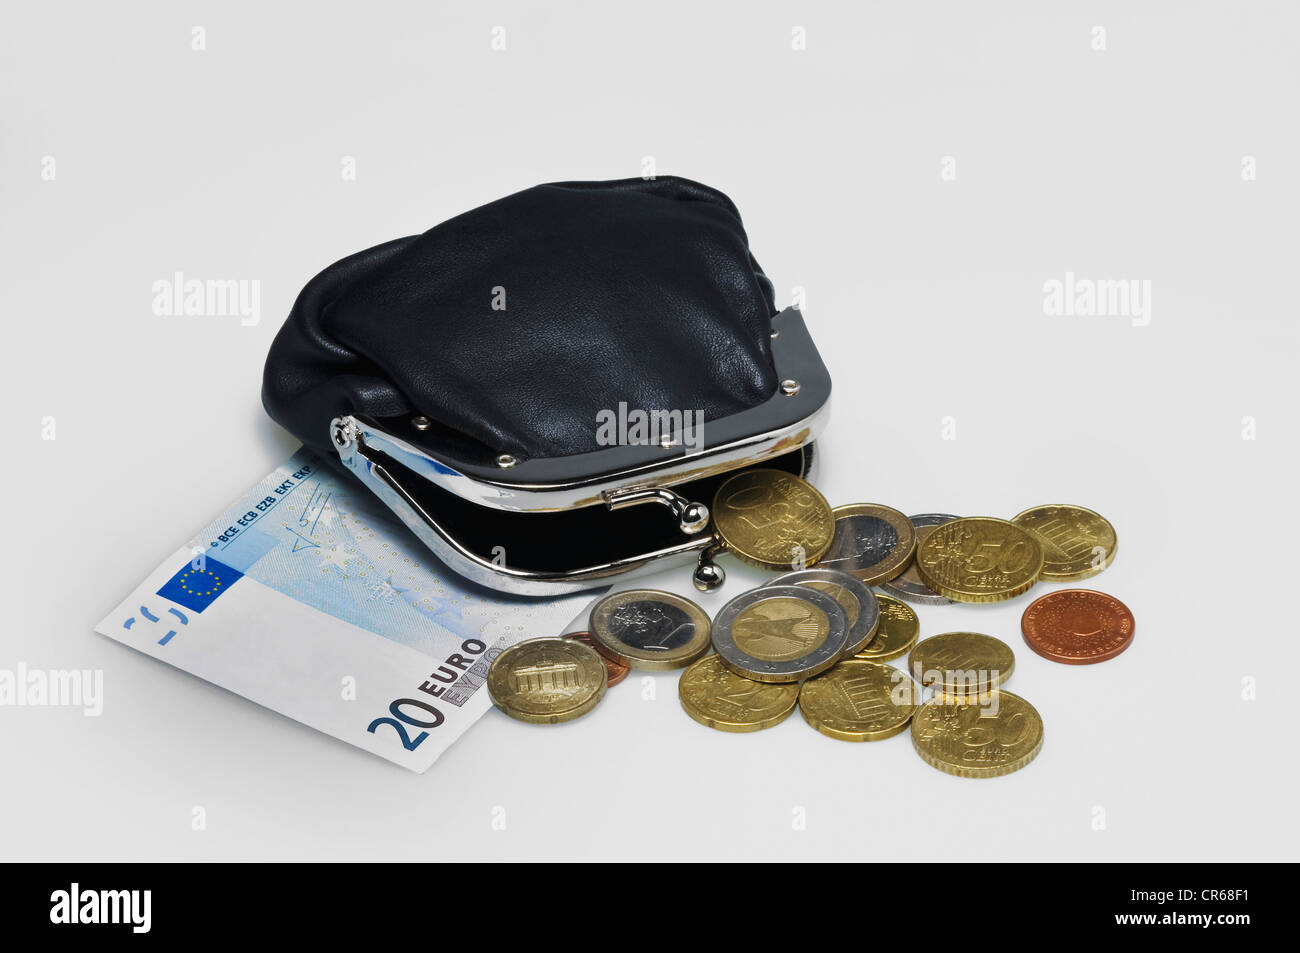 Black purse with clip, 20 Euro banknote and Euro coins - Stock Image